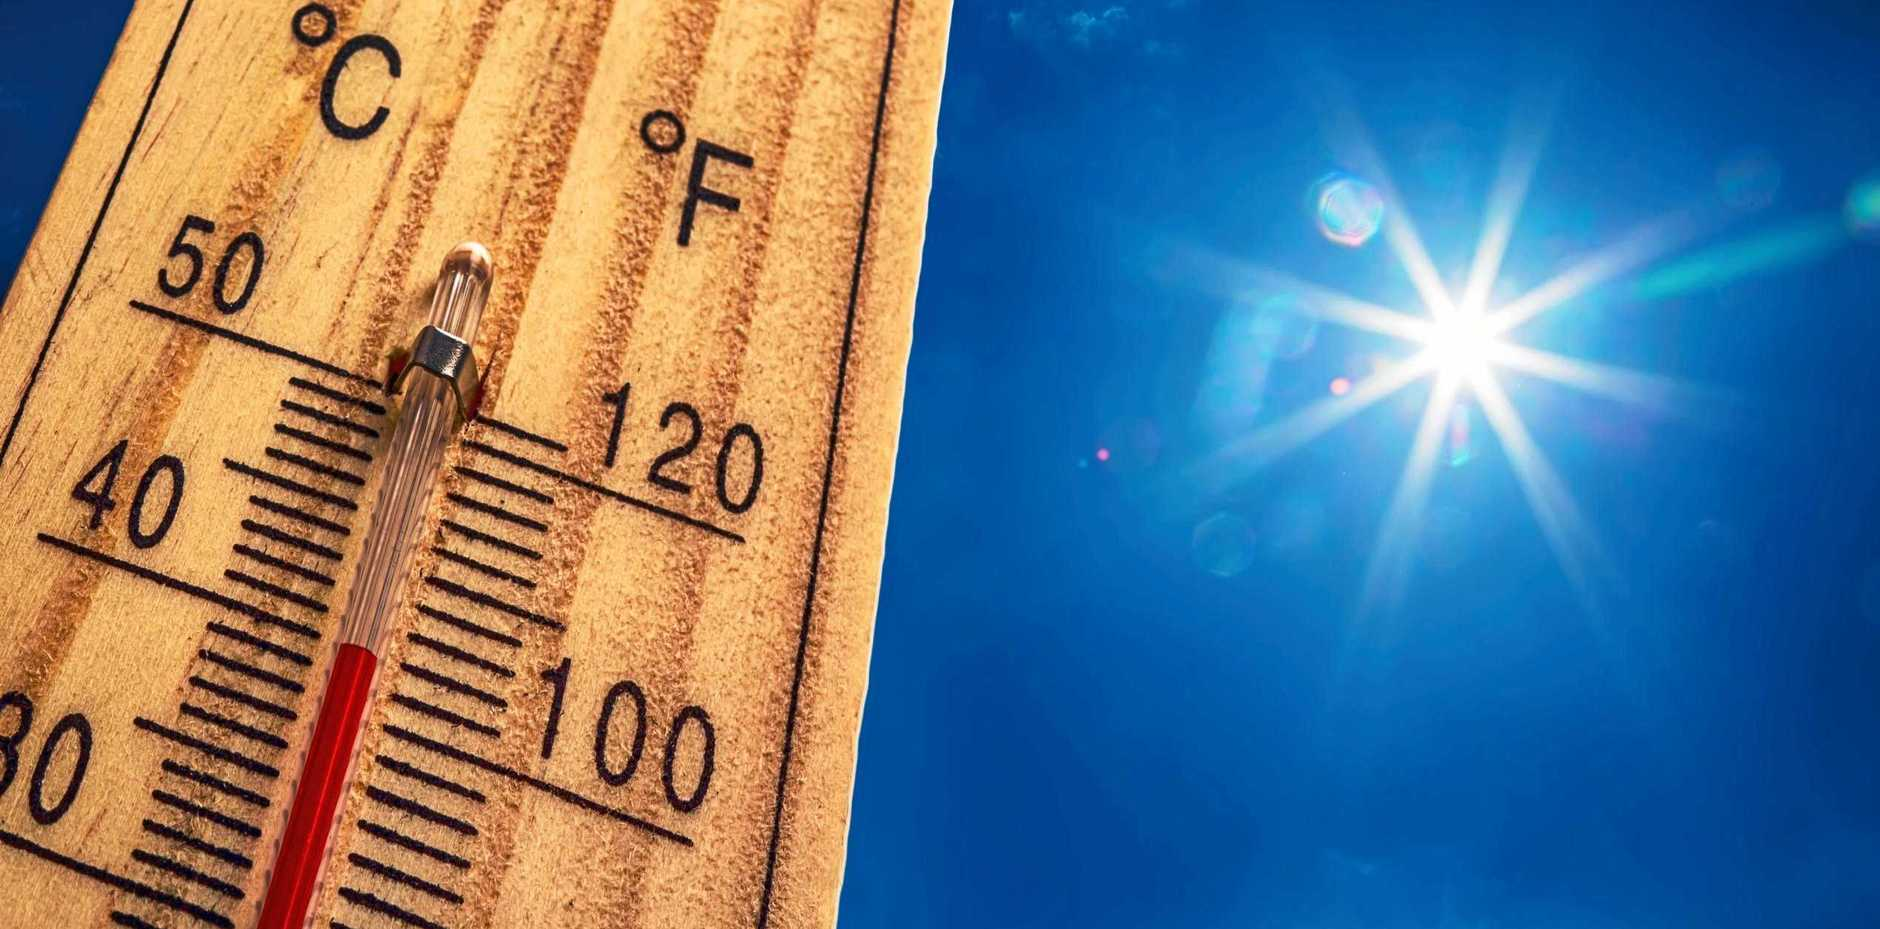 Temperatures are set to rise this week